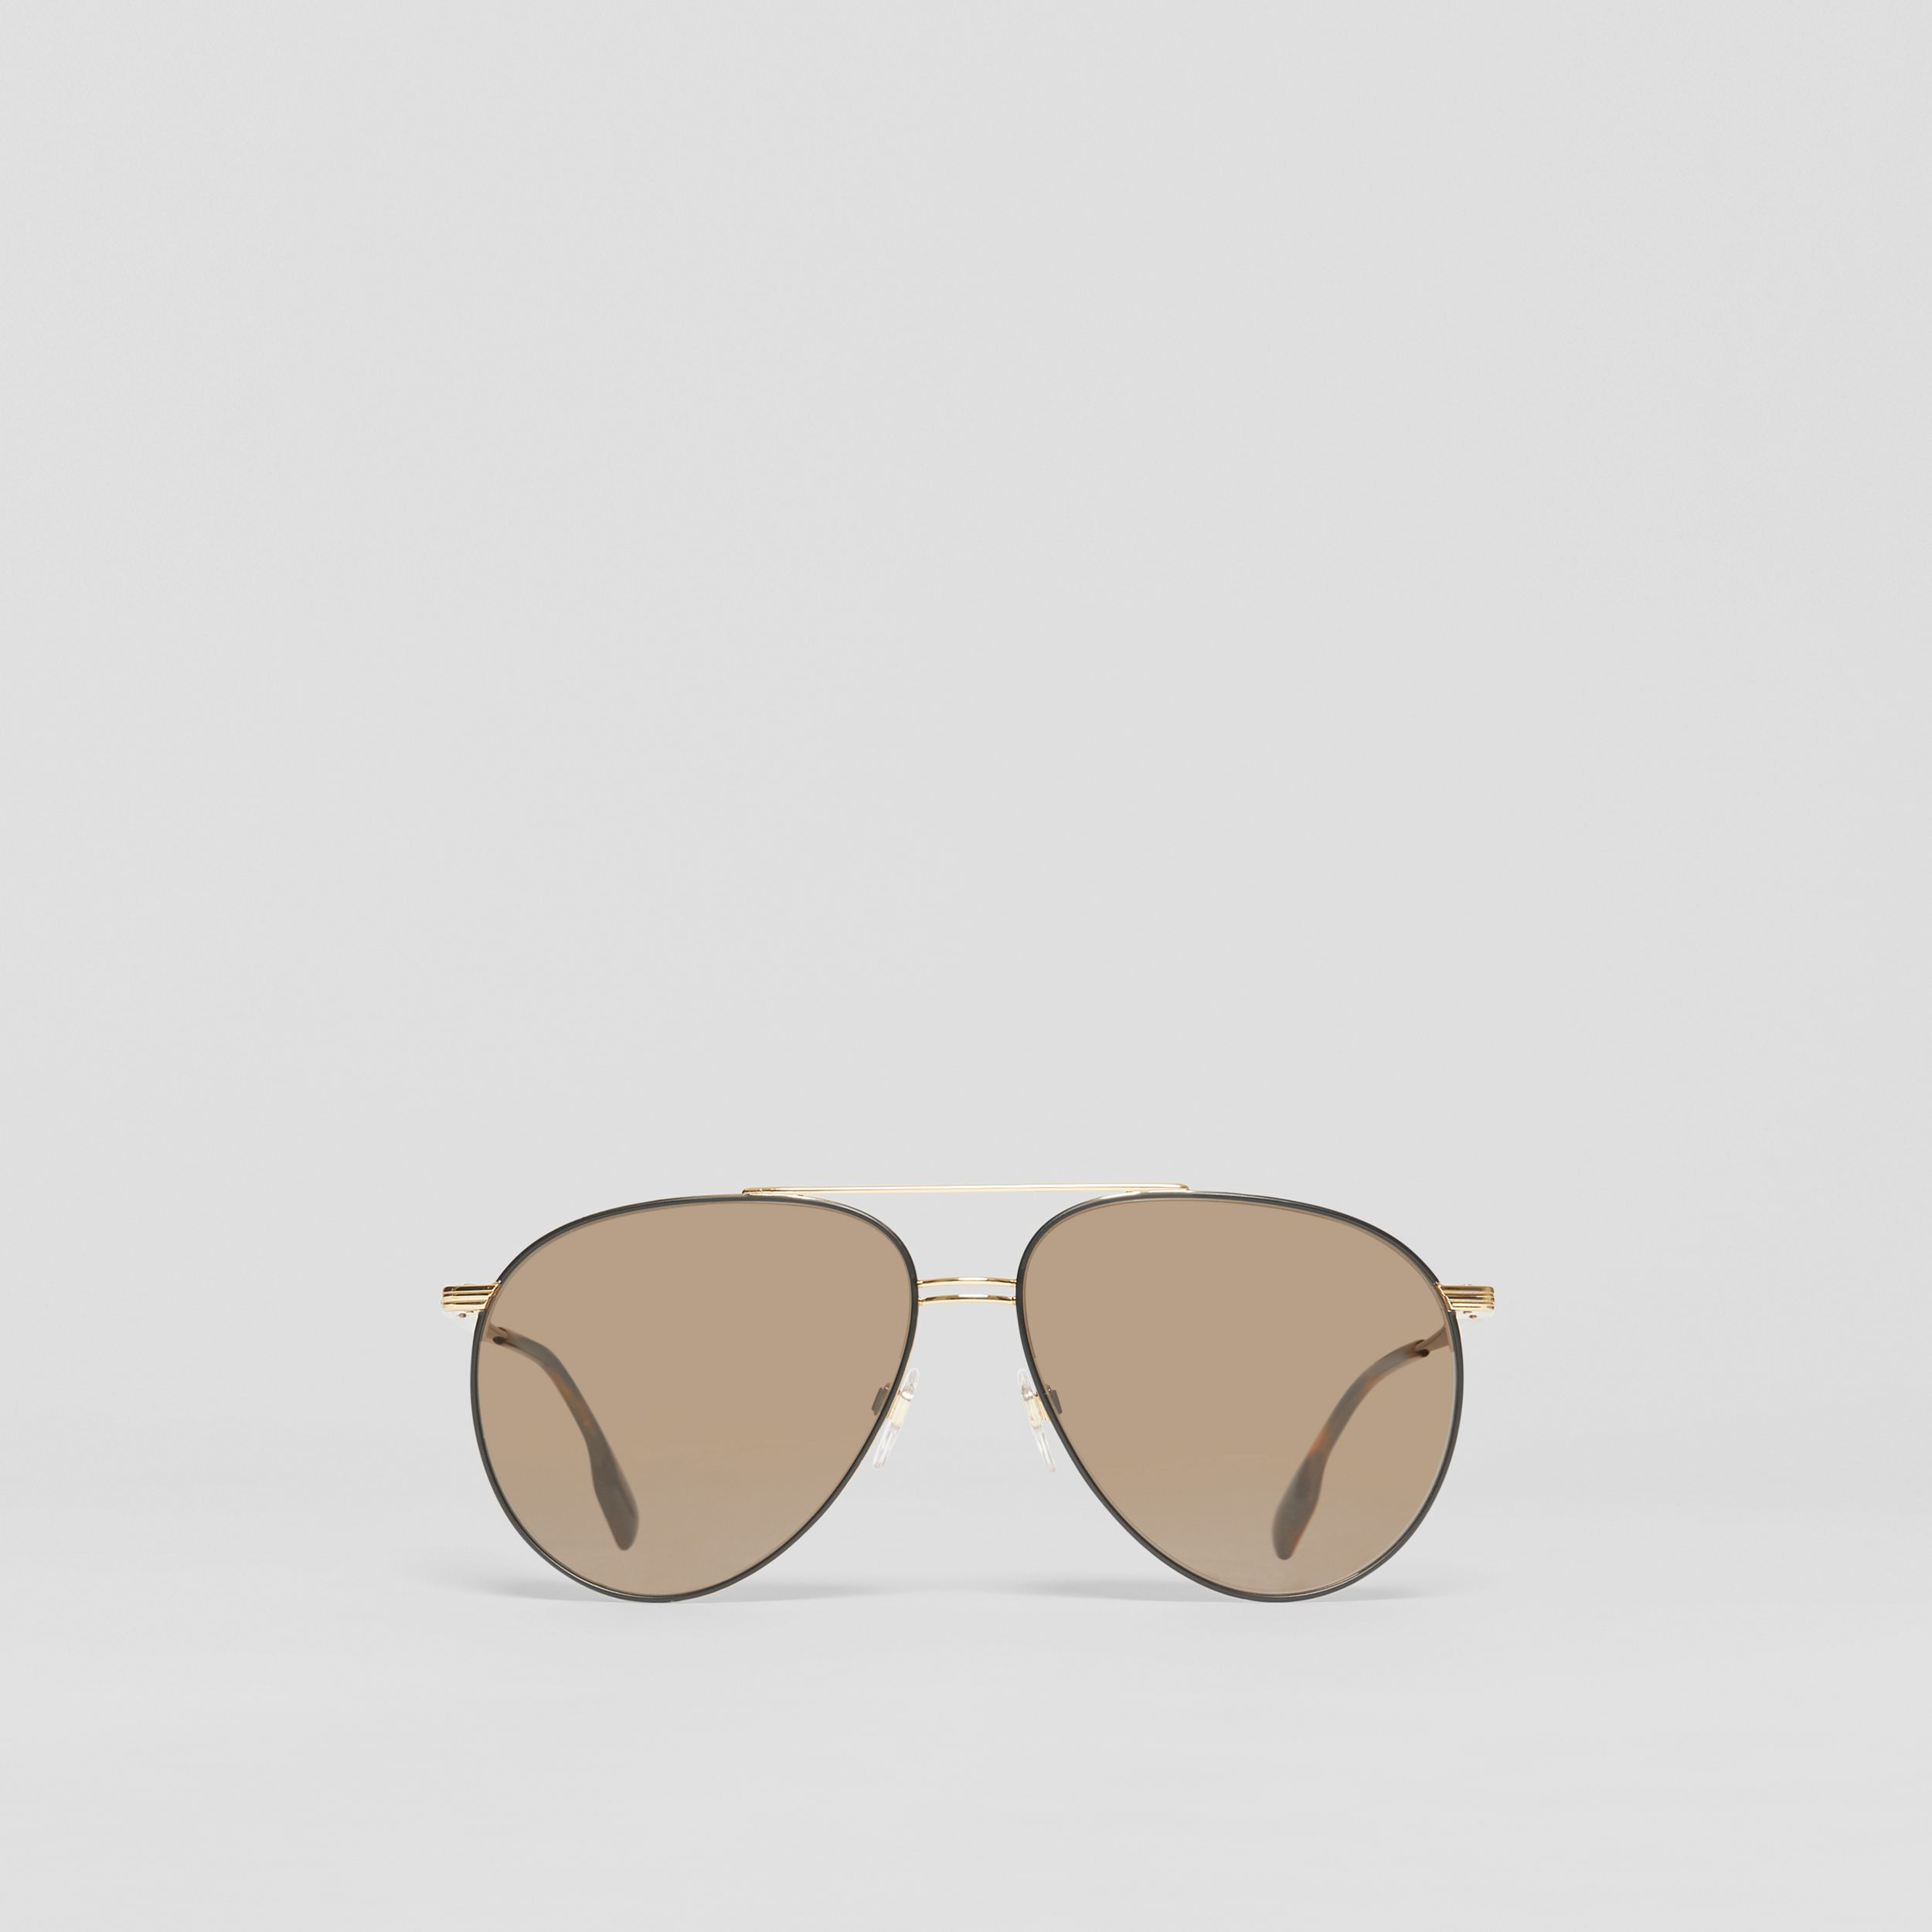 Top Bar Detail Pilot Sunglasses in Gold - Men | Burberry - 1